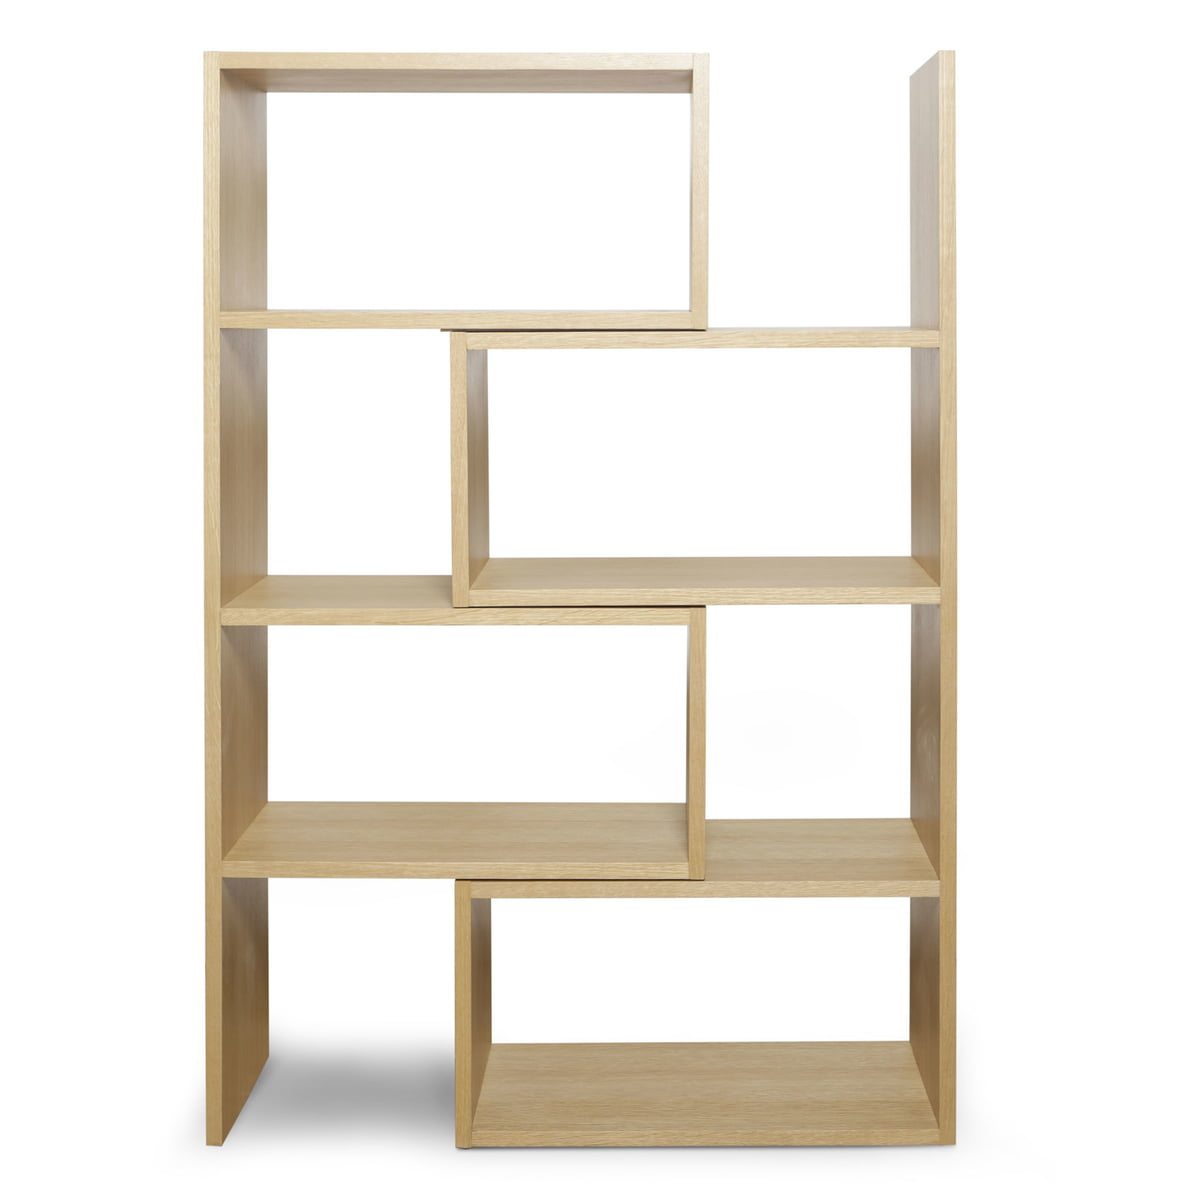 purchase the extend shelf by design house stockholm. Black Bedroom Furniture Sets. Home Design Ideas